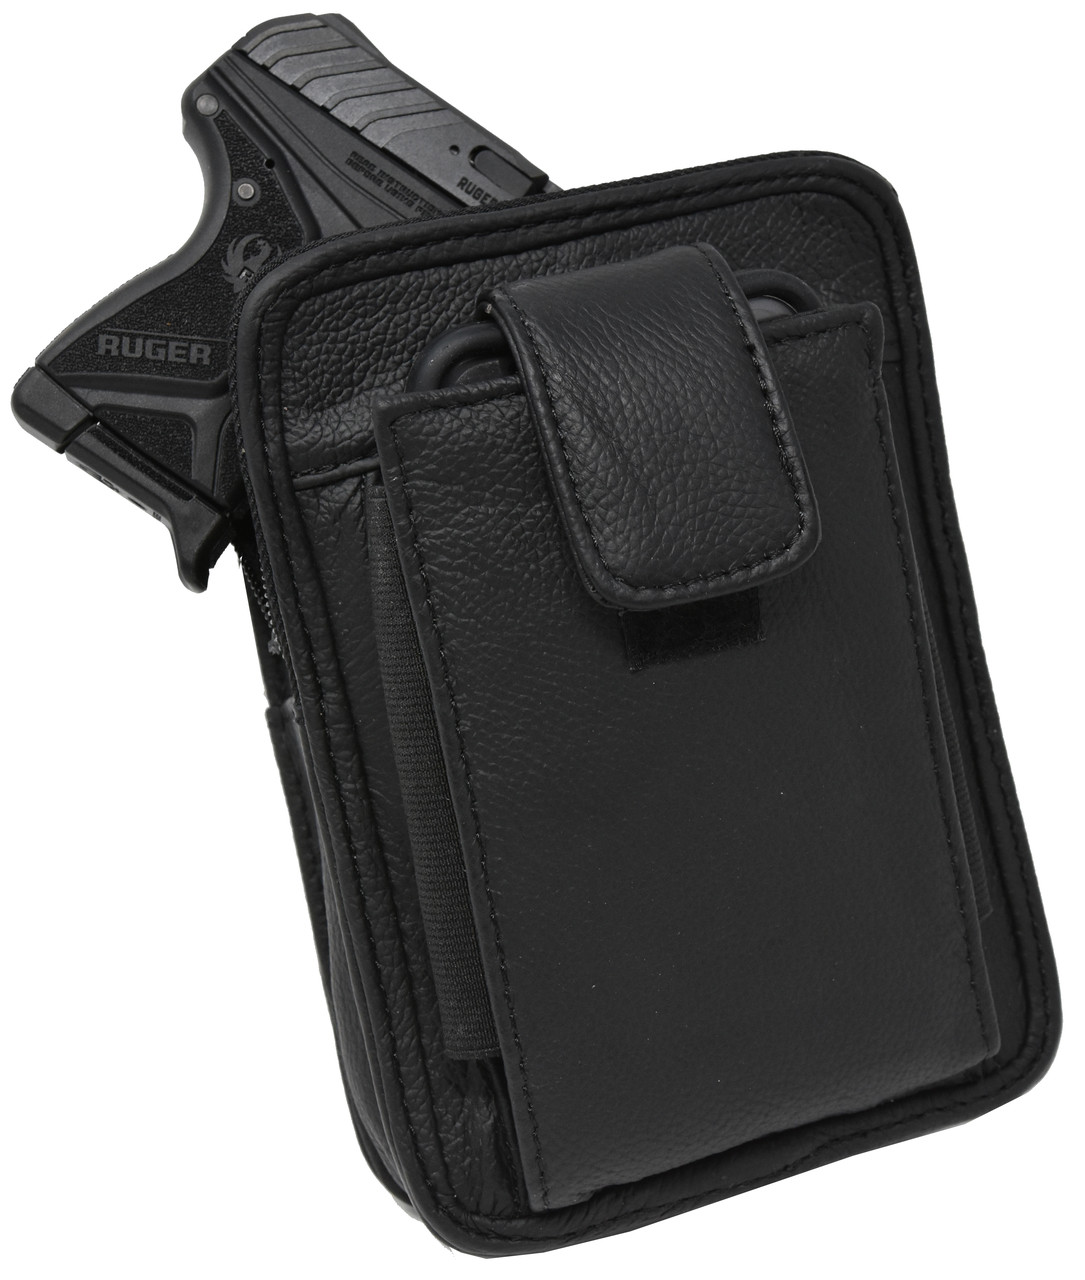 Black Leather Unisex OWB CCW Cell Phone Clutch For Small Pistols